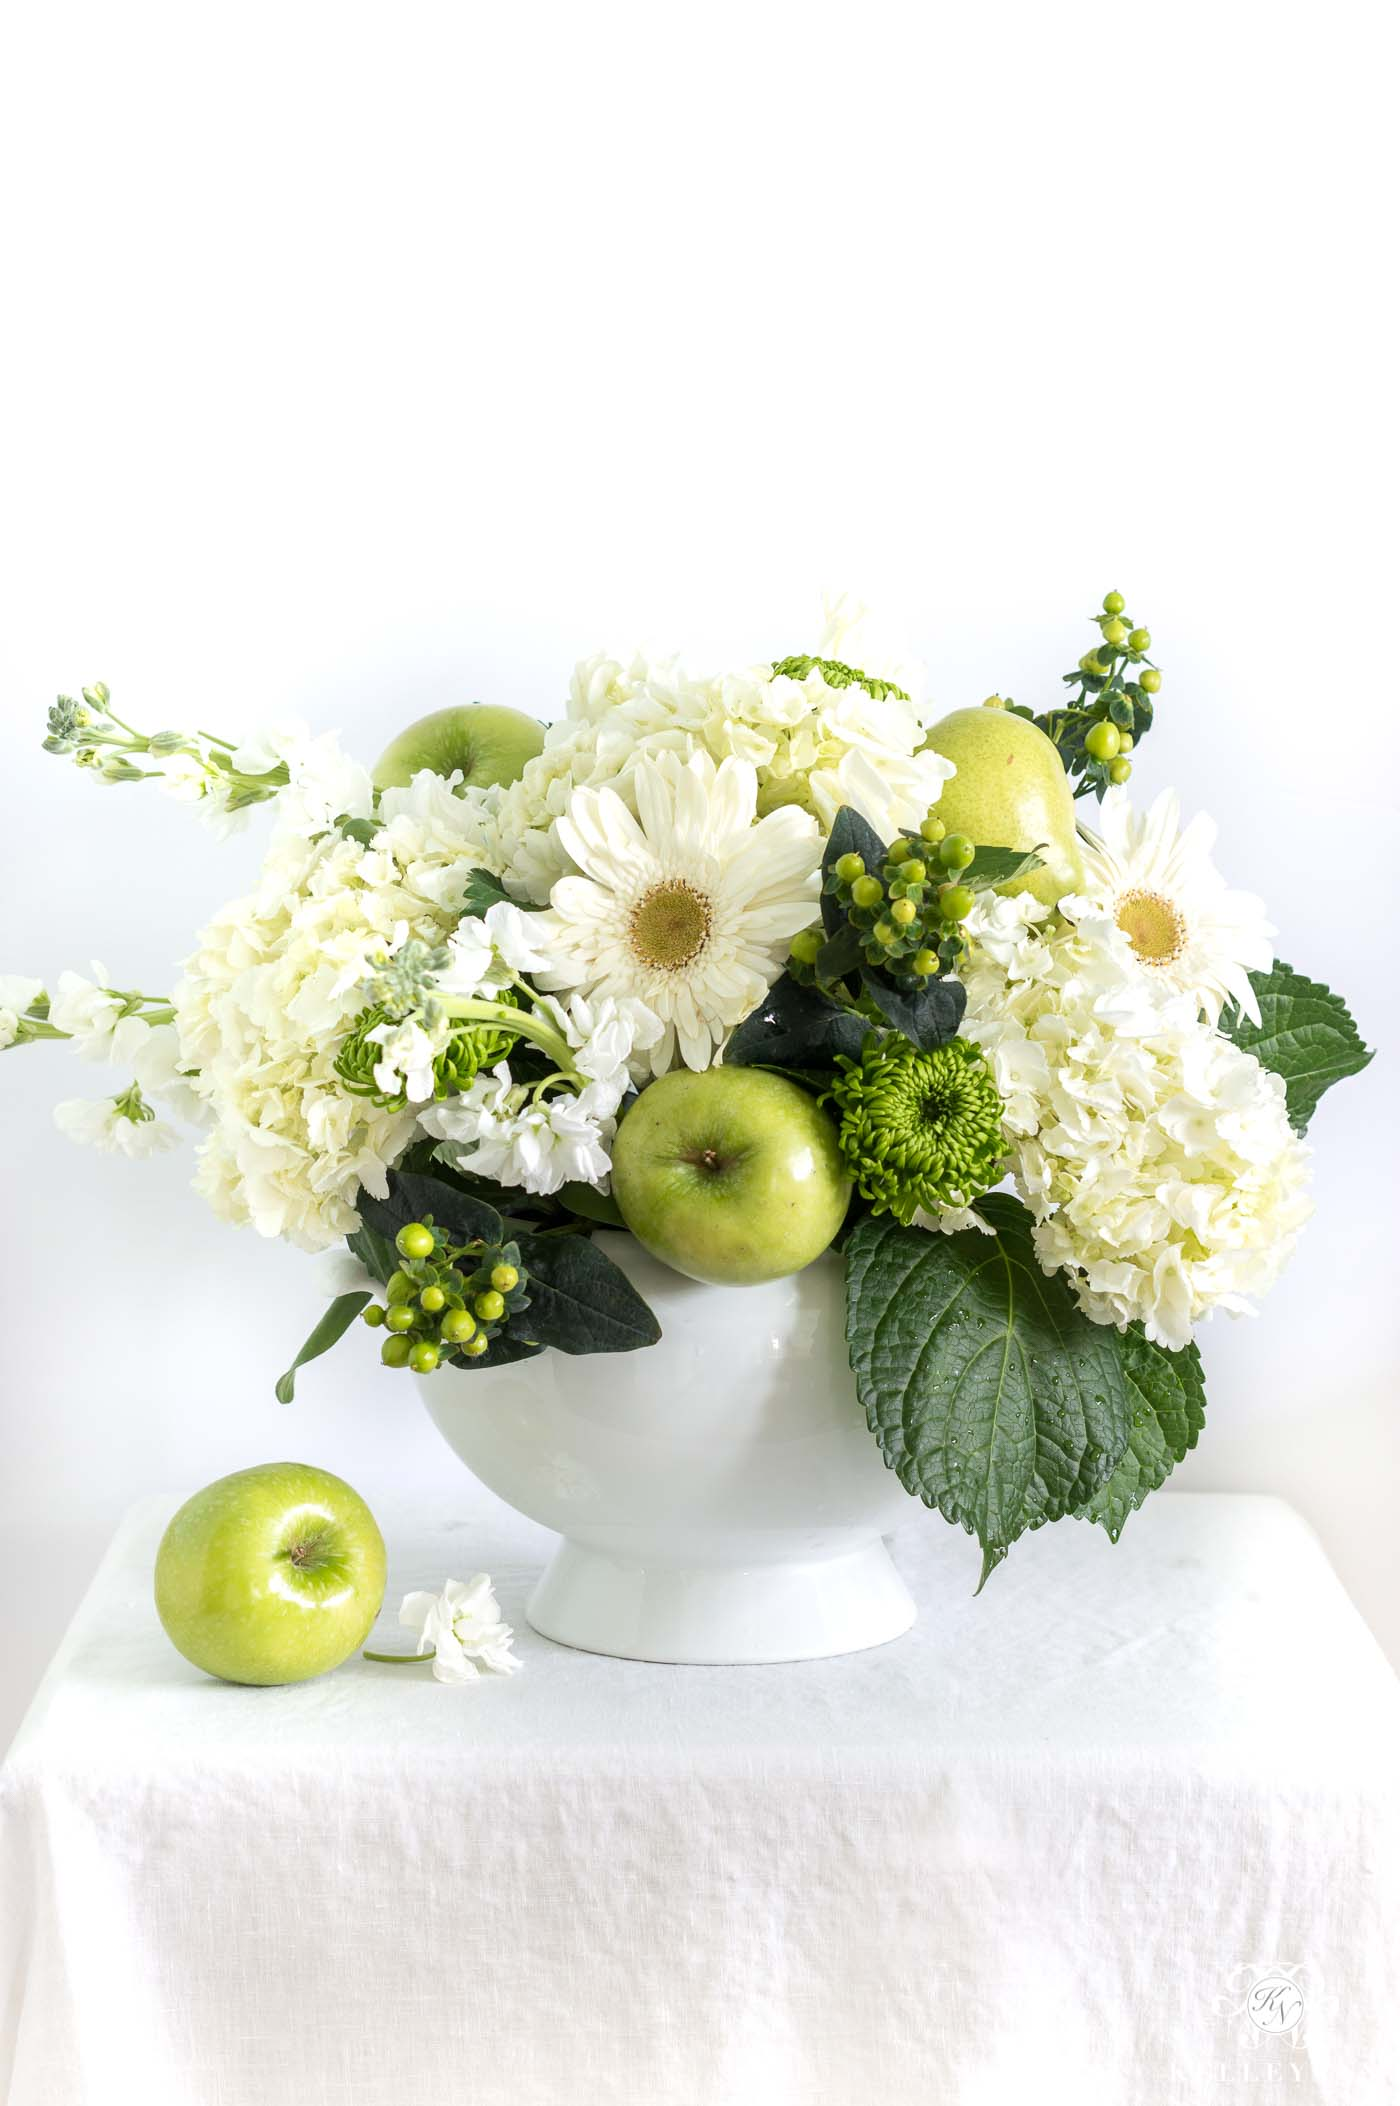 Easy, inexpensive fruit and flower centerpiece ideas